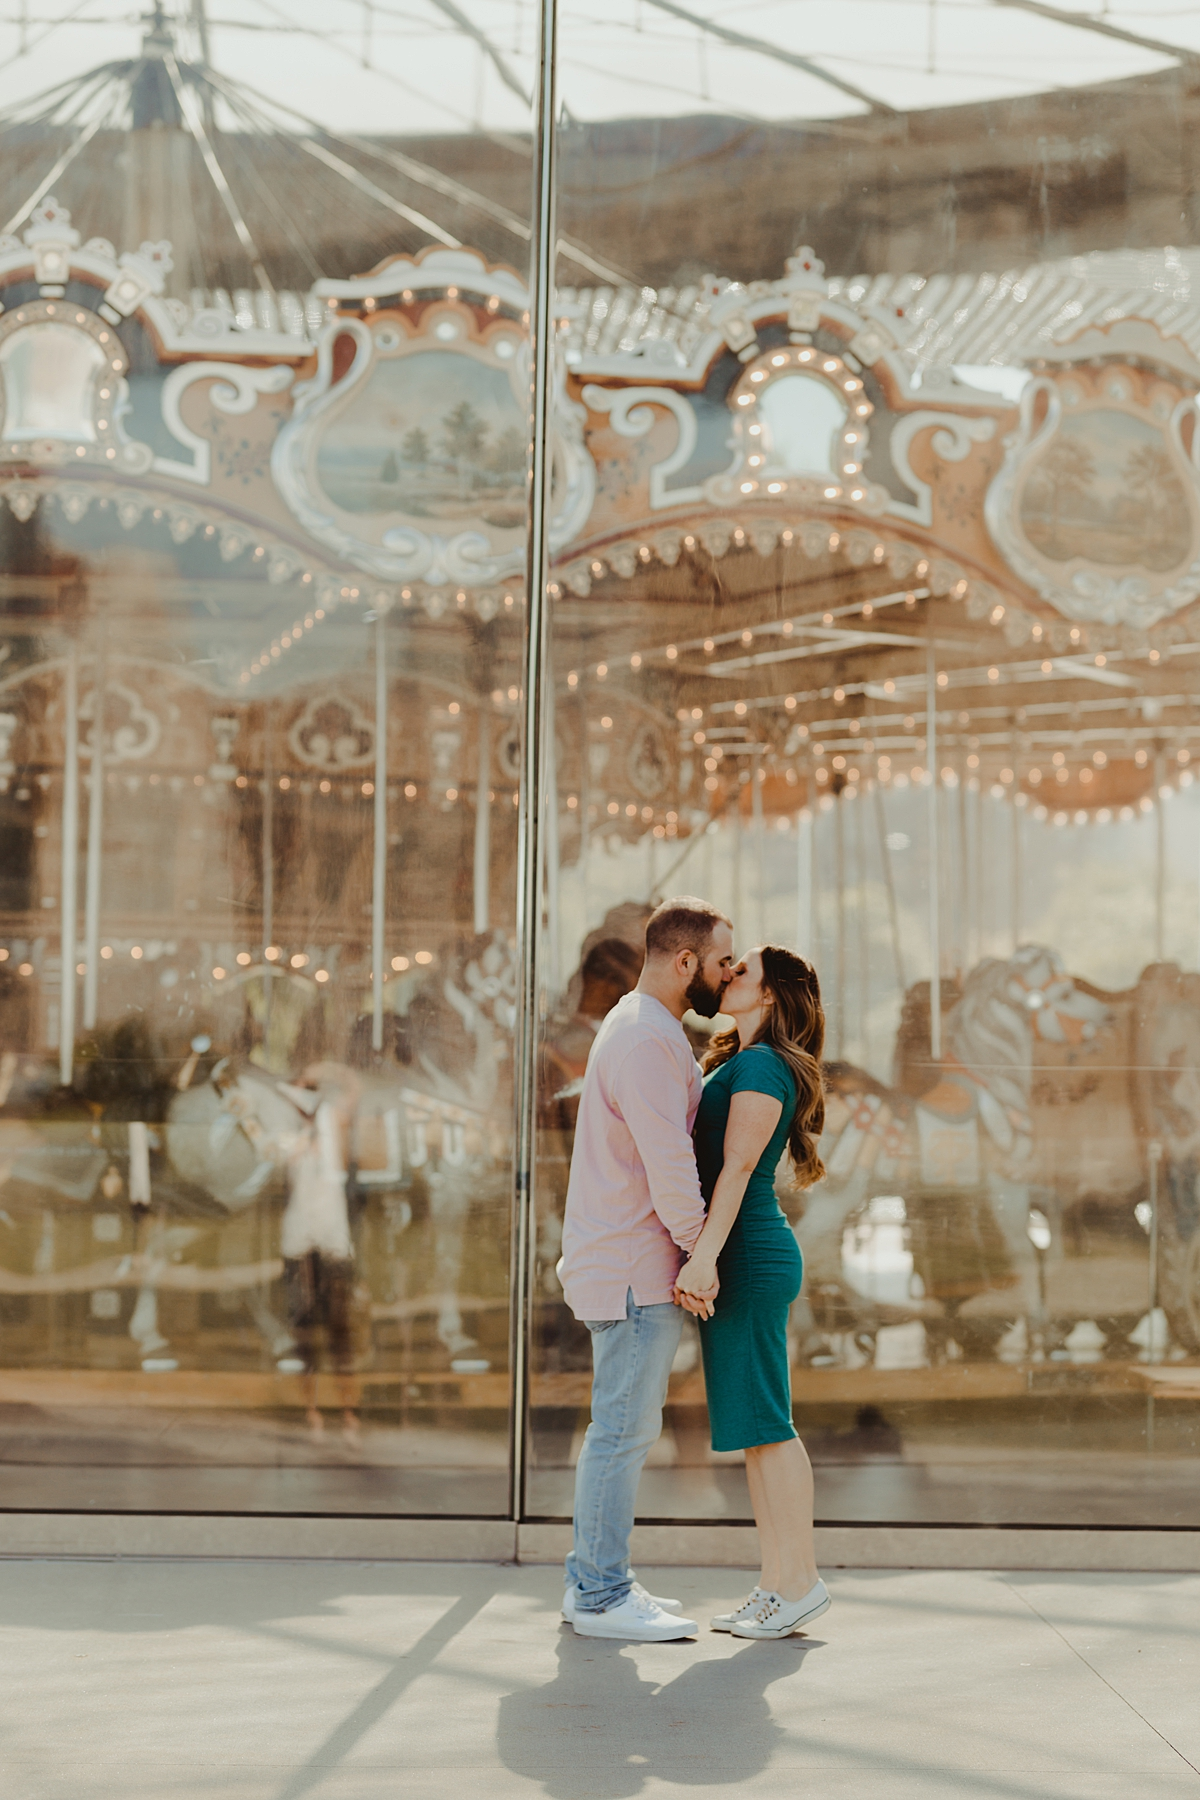 photo of pregnant husband and wife kissing and holding hands in front of jane's carousel during outdoor maternity photo session in brooklyn. image by krystil mcdowall photography